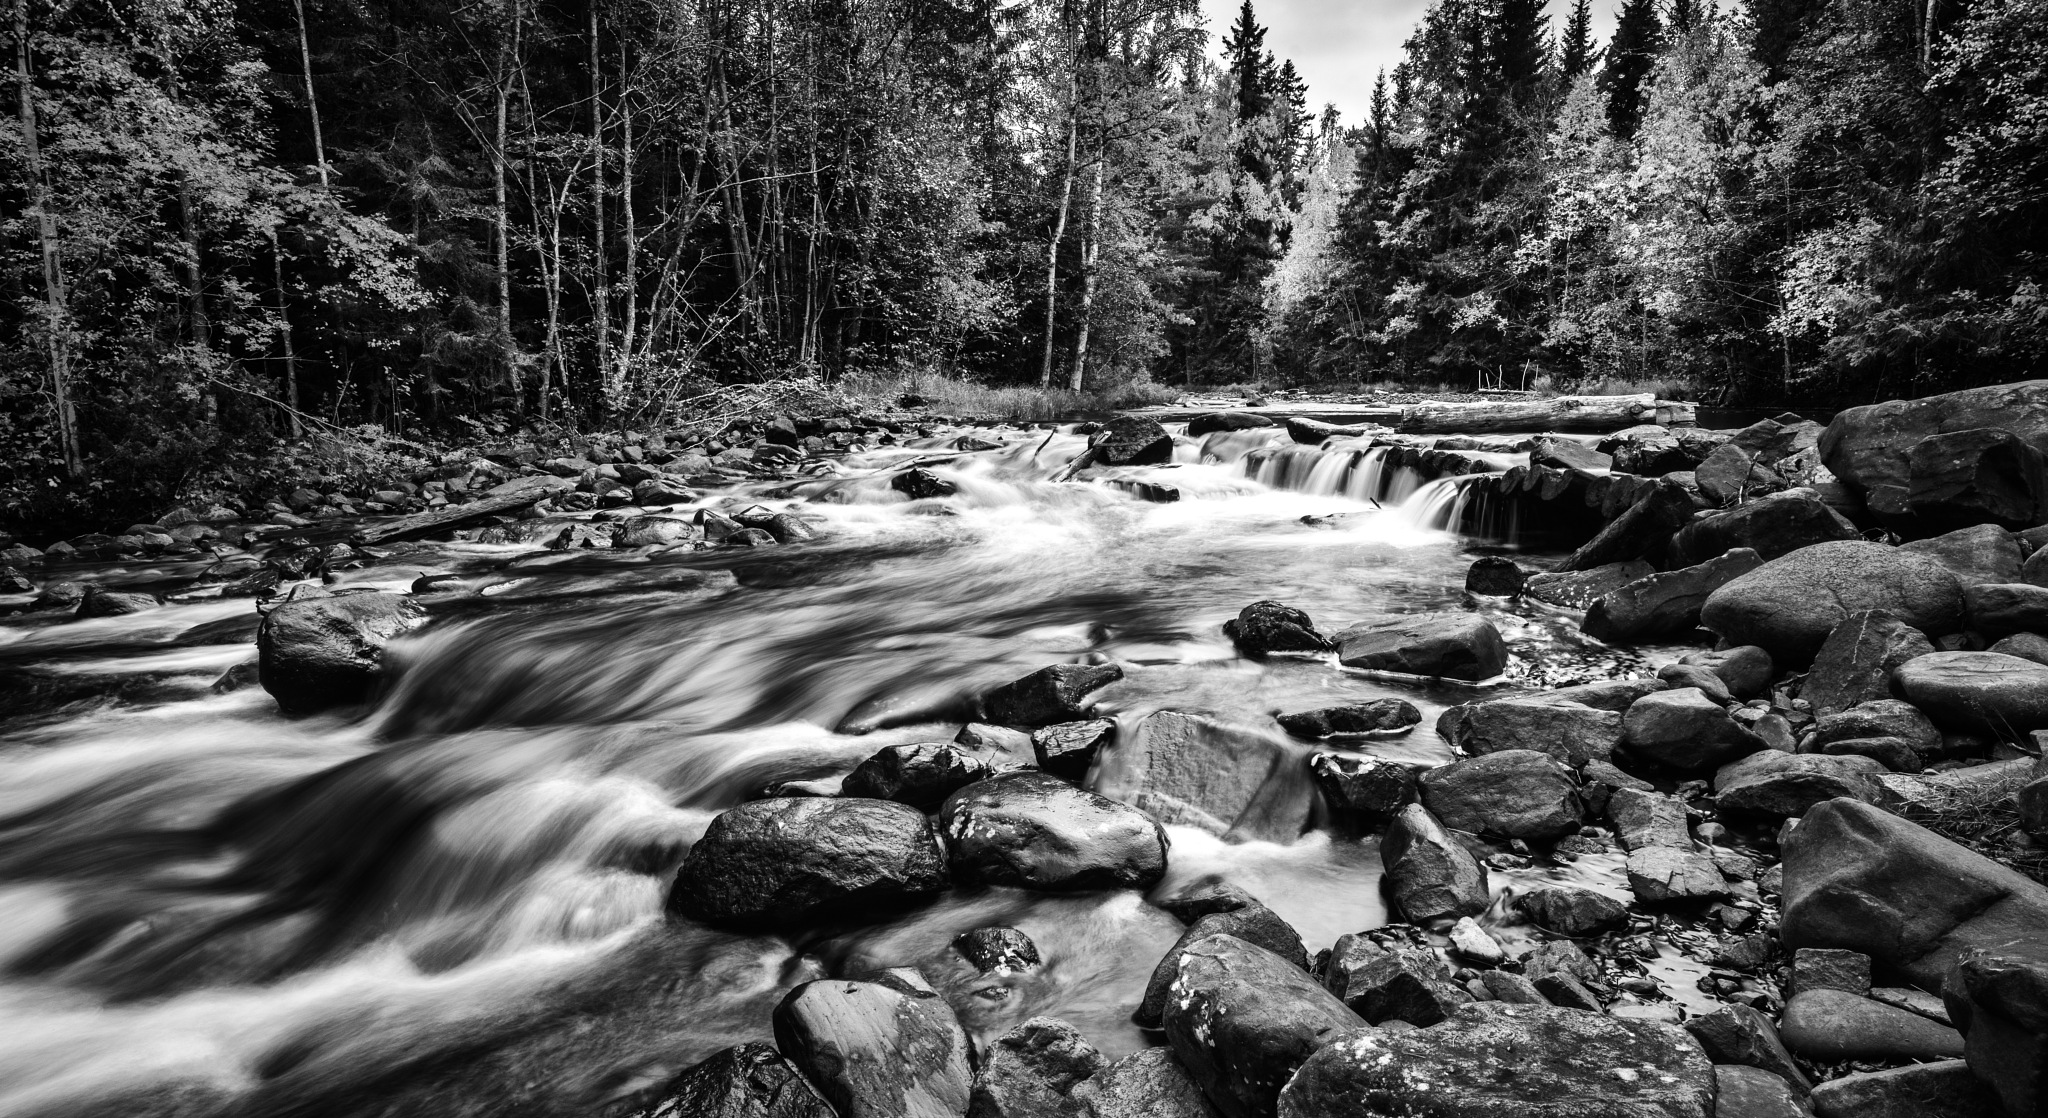 small falls, Sweden by hutchst